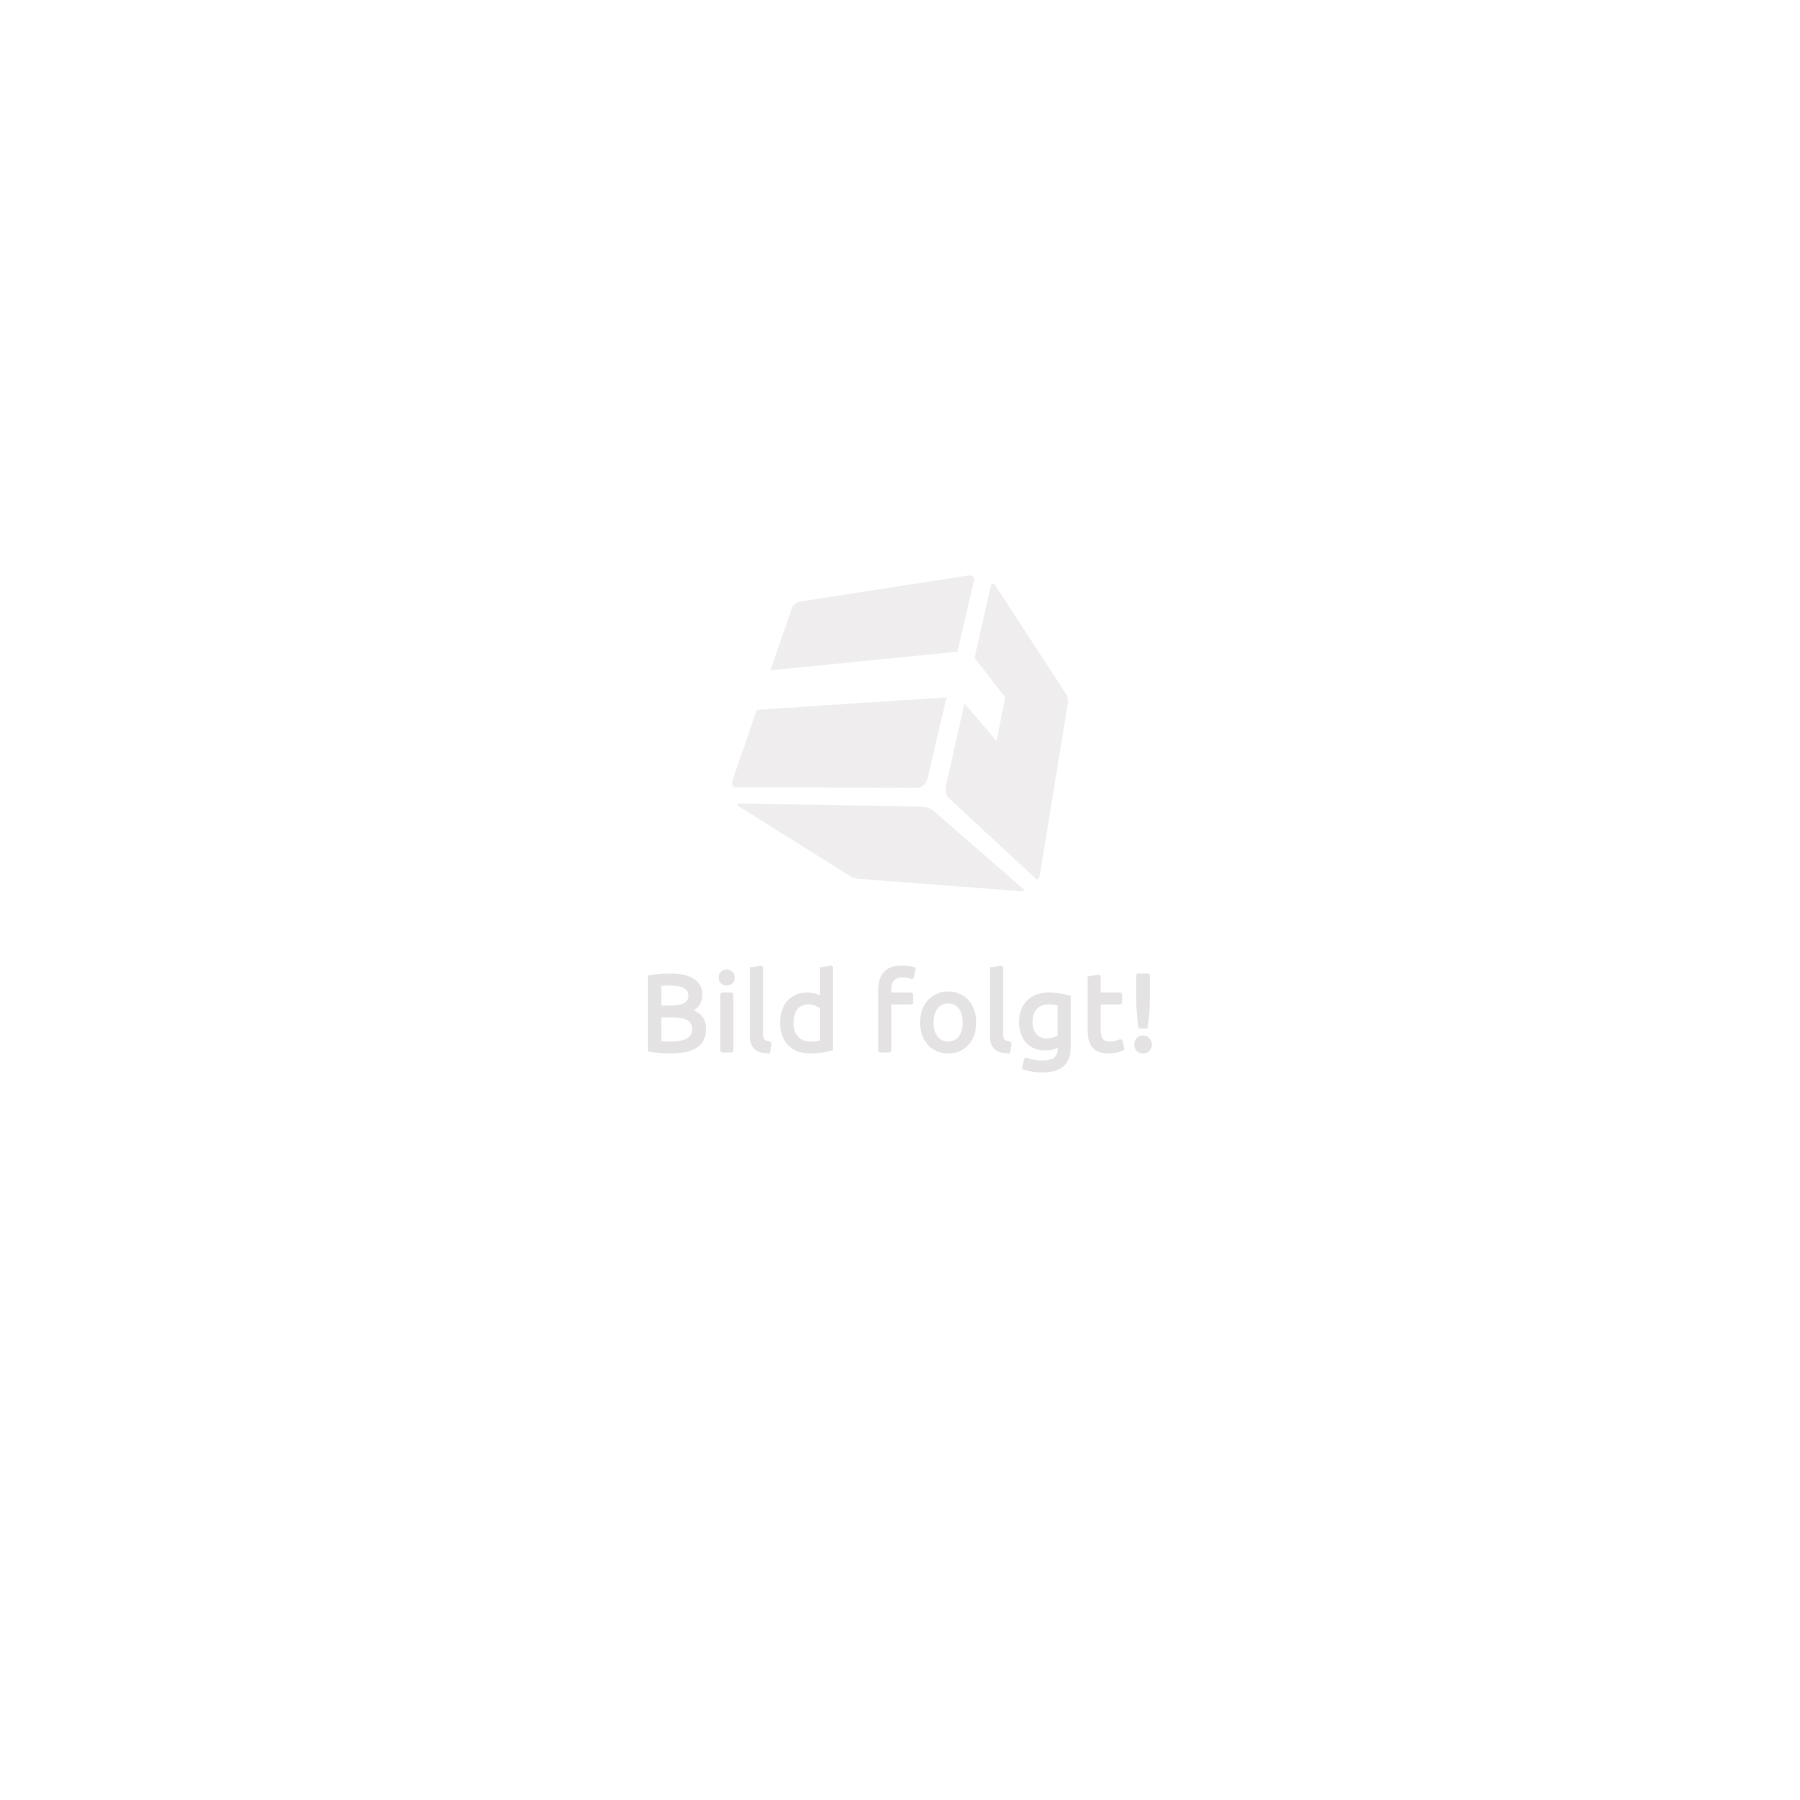 Brake piston tool set 22 PCs. red